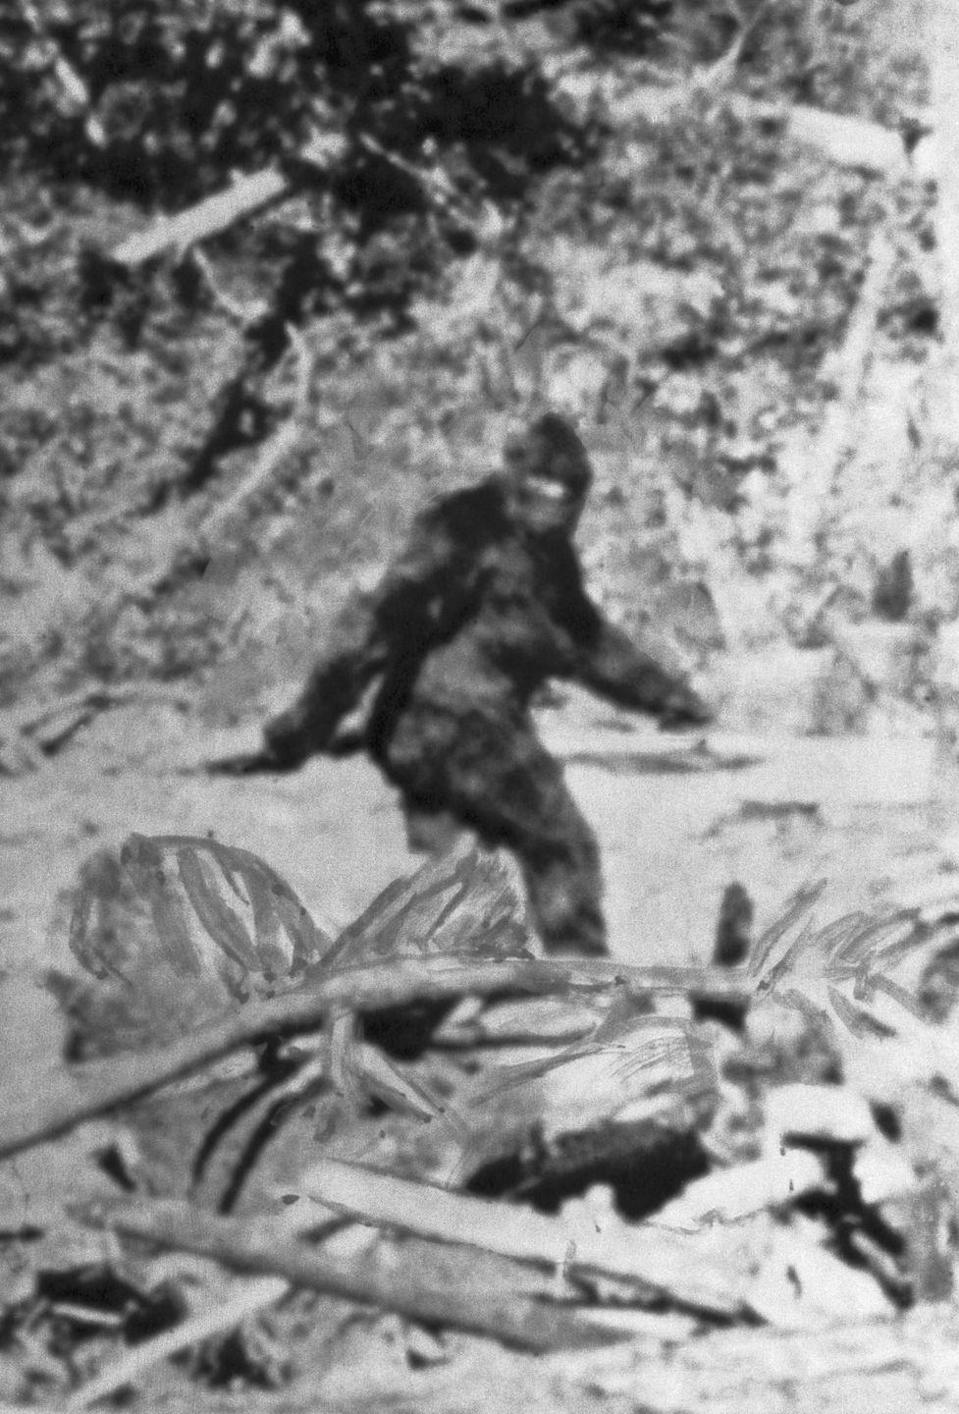 """<p>No conversation about urban legends is complete without discussing the king of all urban legends: Bigfoot. The infamous Sasquatch cryptid has been allegedly spotted all over the county, but <a href=""""https://www.onlyinyourstate.com/washington/urban-legends-in-wa-2/"""" rel=""""nofollow noopener"""" target=""""_blank"""" data-ylk=""""slk:most of the sightings"""" class=""""link rapid-noclick-resp"""">most of the sightings</a> hail from Washington state. </p><p>Photos and videos allegedly <a href=""""https://www.mercurynews.com/2020/01/24/was-bigfoot-caught-on-washington-highway-camera/"""" rel=""""nofollow noopener"""" target=""""_blank"""" data-ylk=""""slk:capturing the mythical creature on camera"""" class=""""link rapid-noclick-resp"""">capturing the mythical creature on camera</a> have fueled the Bigfoot legacy for decades but solidified evidence of the creature's actual existence has never been secured. </p>"""